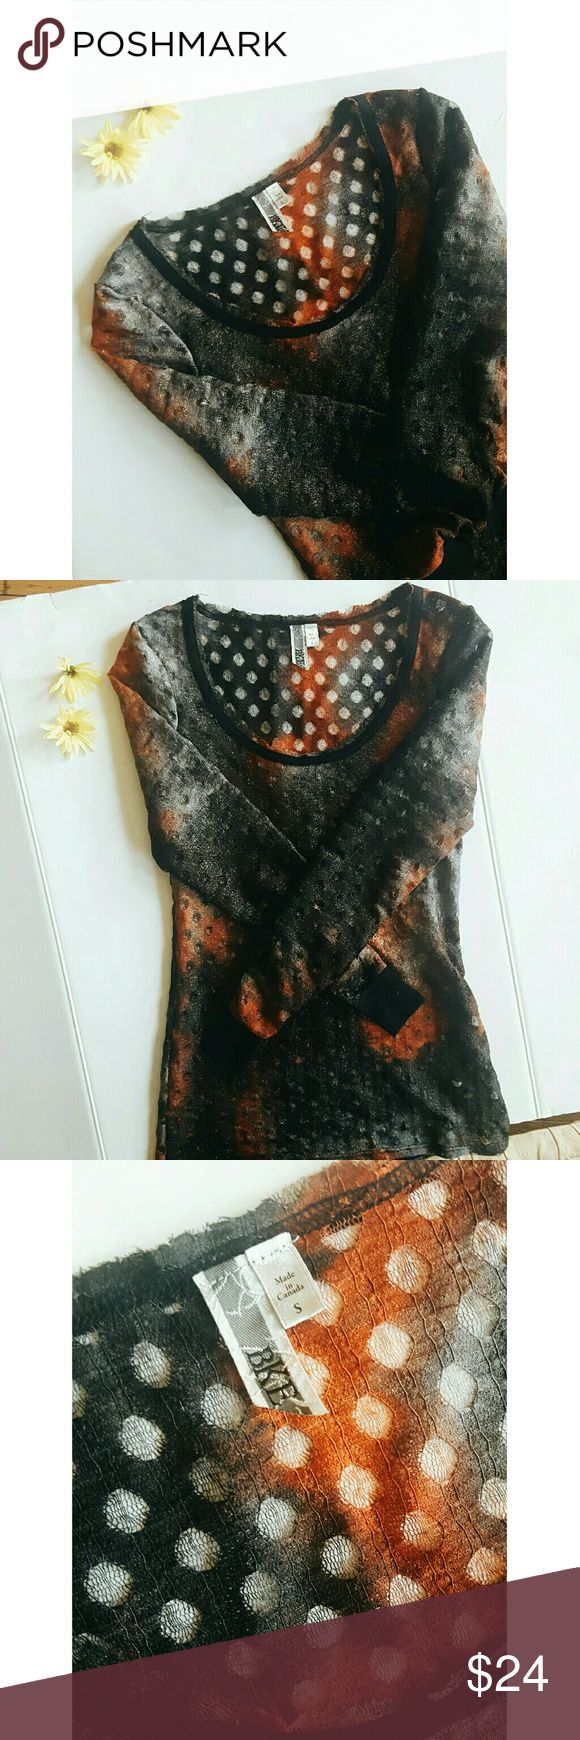 """BKE black and orange long sleeve top Brand BKE  Tag size Small  Materials 98% polyester 2%spandex  Bust 16.5""""  Length 26""""  Sleeves 25.5""""  Gently used - in like new condition   -Ships same day or next  -Smoke and pet free home  -Sorry I don't do tryons -No holds or trades  -Always open to reasonable offers -Happy to answer any more questions:) BKE Tops Tees - Long Sleeve"""